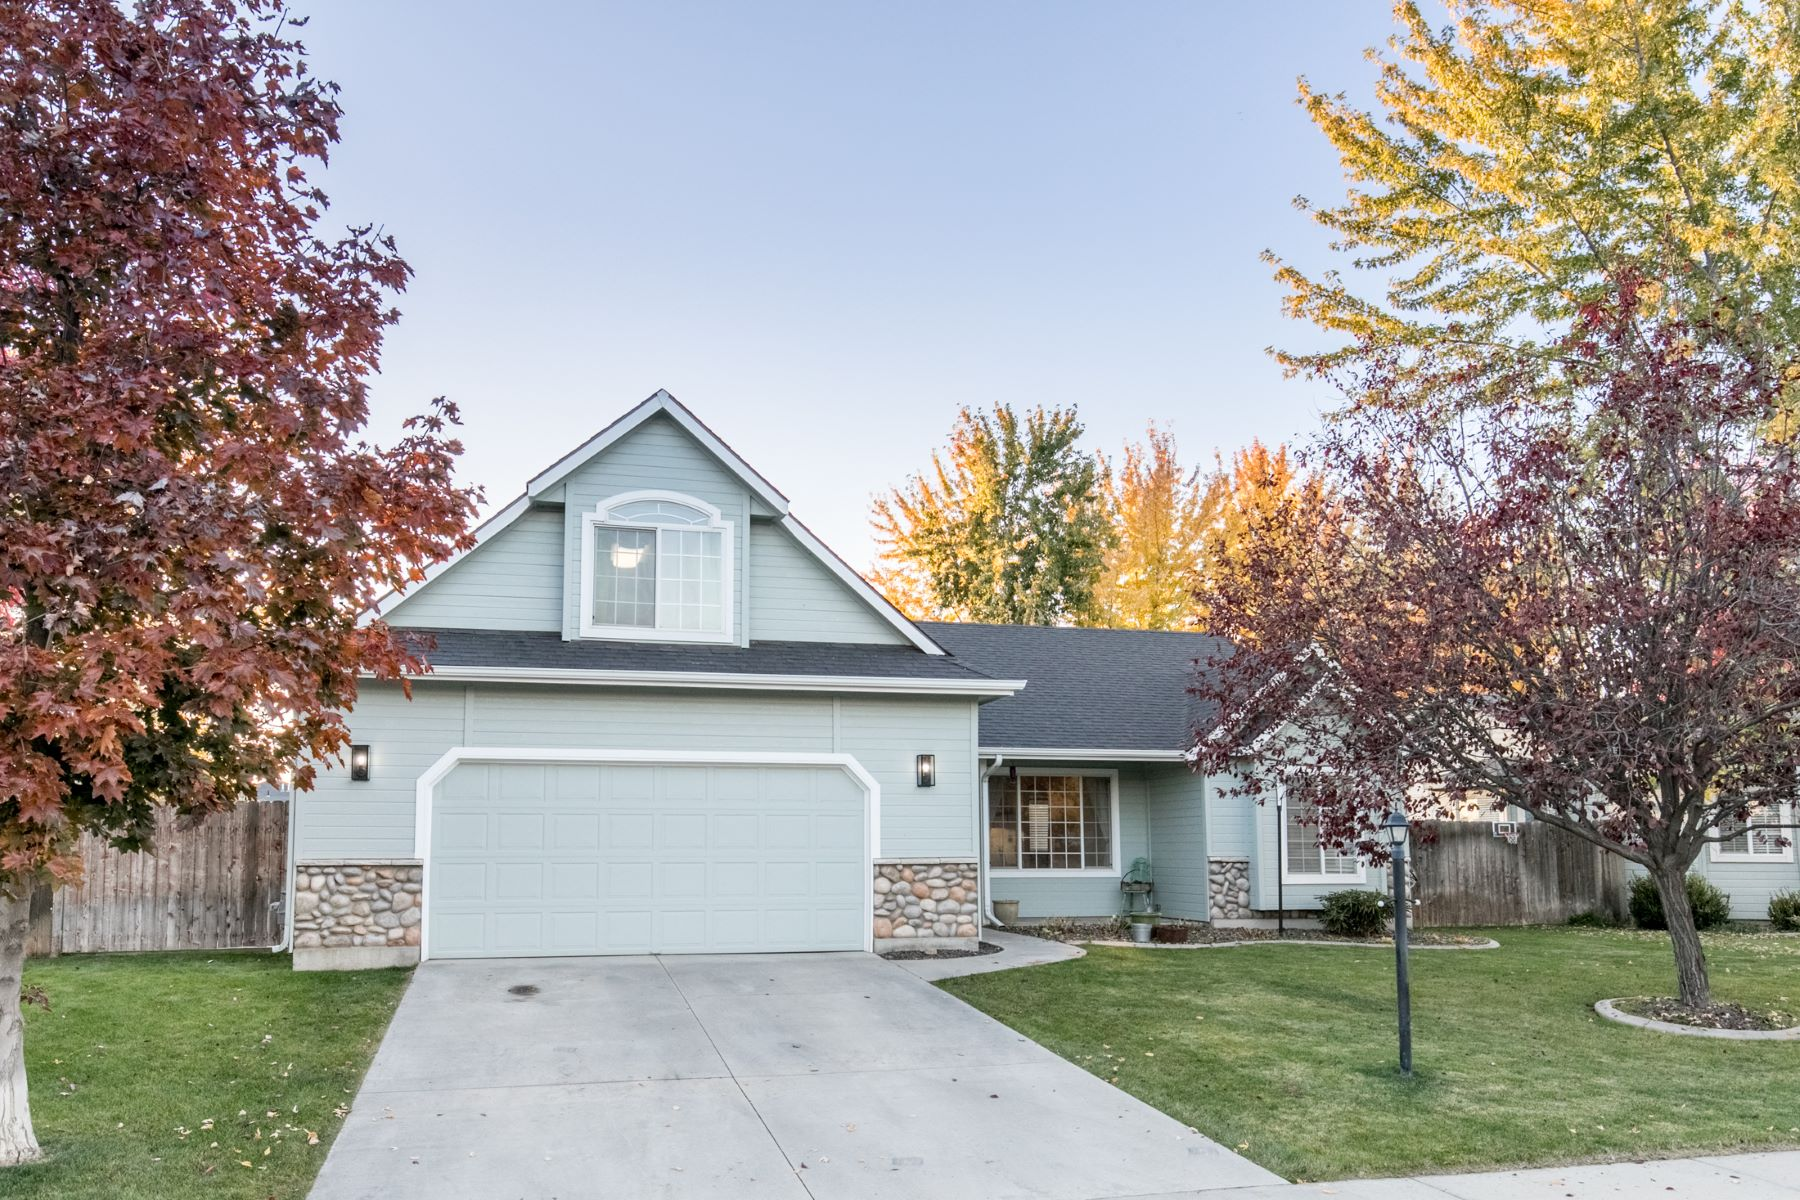 Single Family Homes for Sale at 17077 Lyonsdale Pl, Nampa 17077 N Lyonsdale Pl Nampa, Idaho 83687 United States